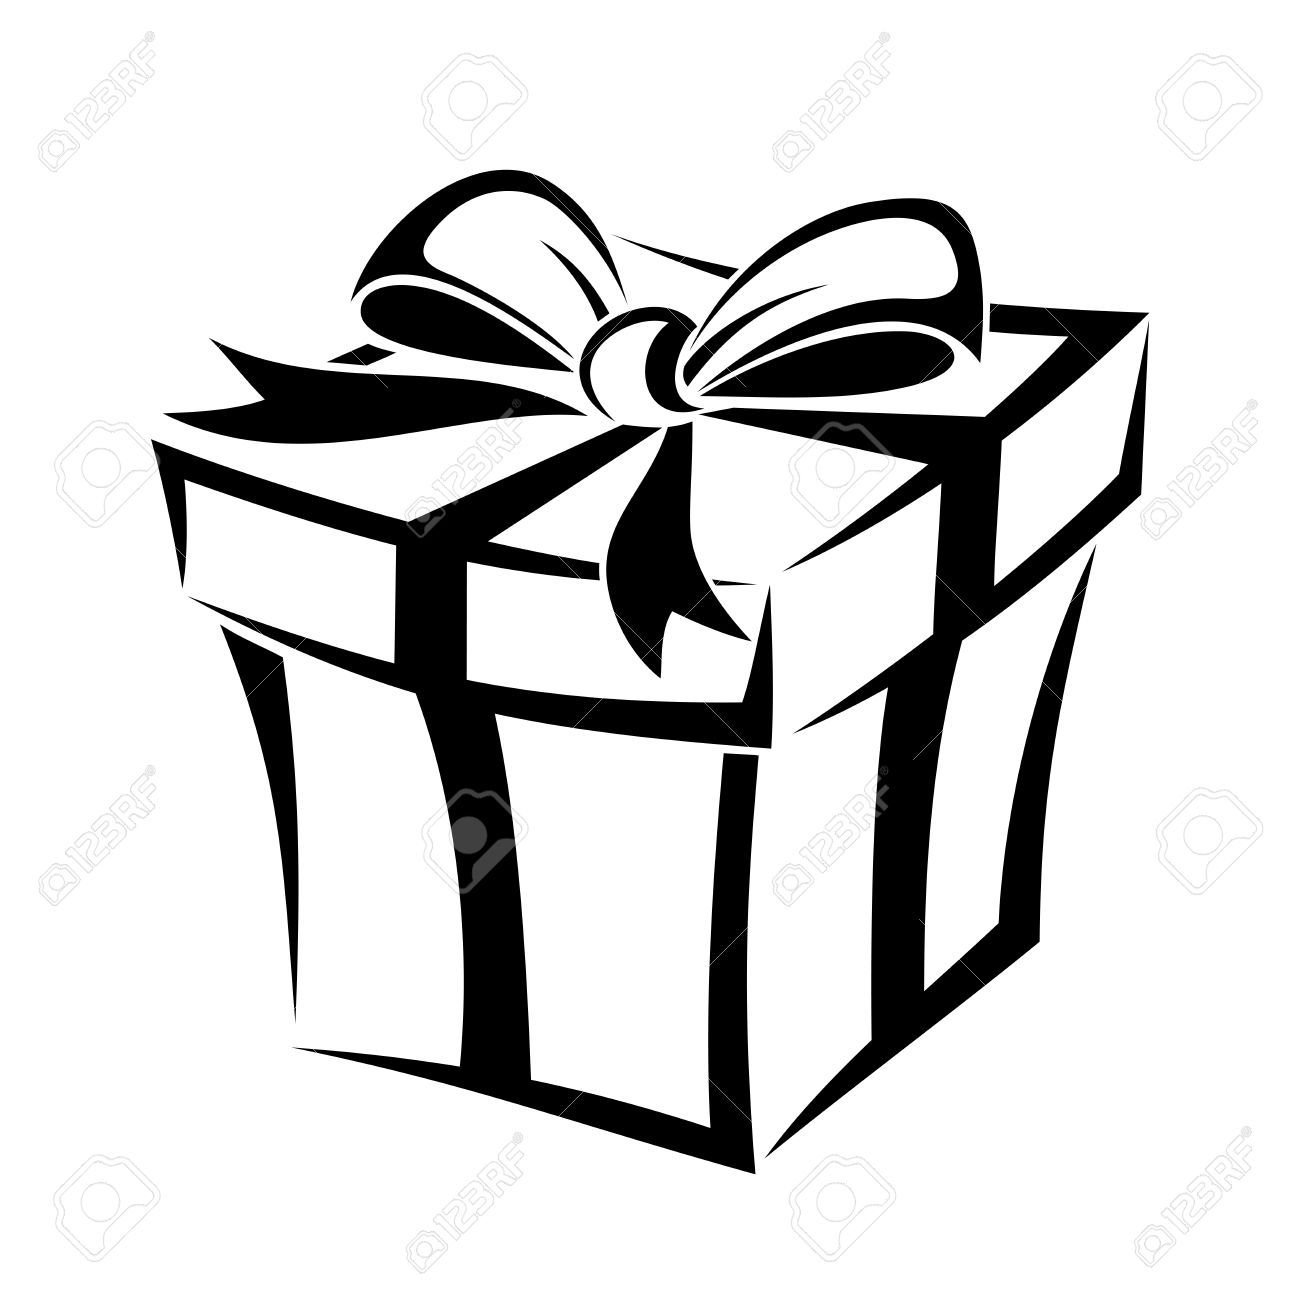 Gift box clipart black and white 3 » Clipart Portal.